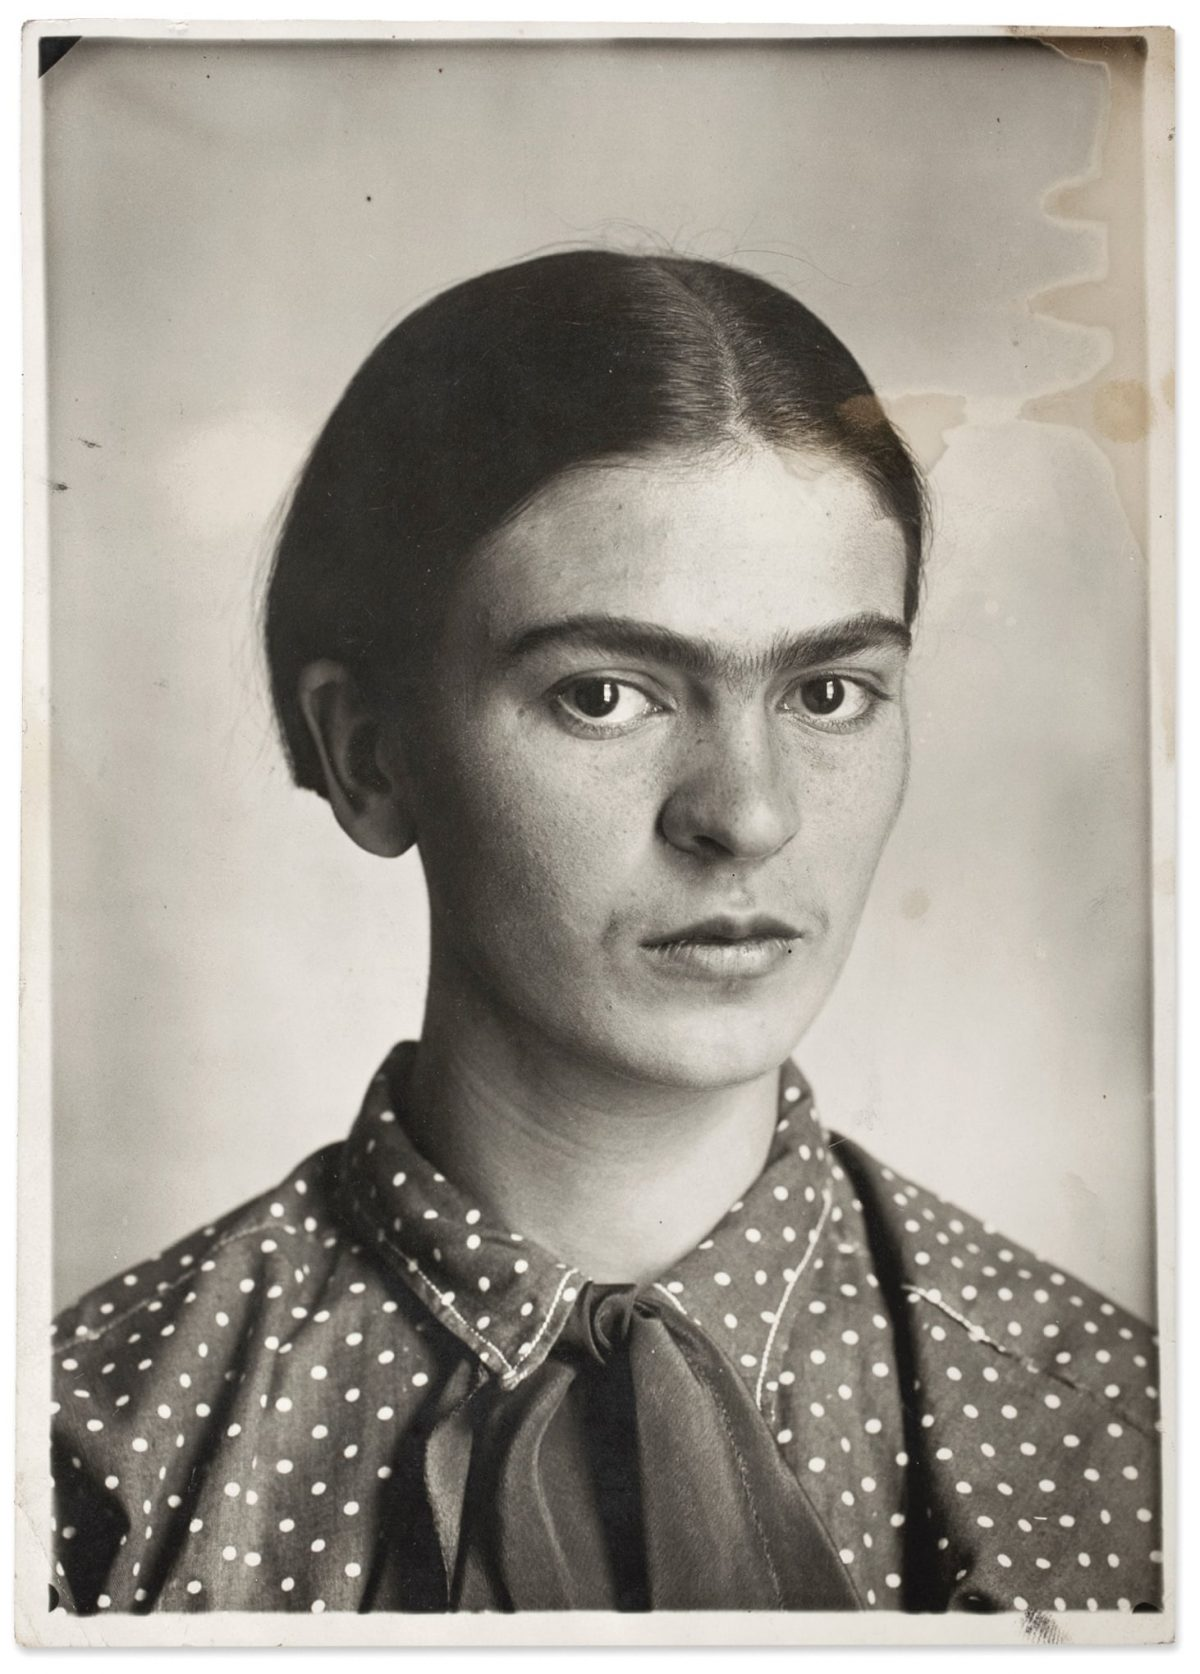 Frida Kahlo by Guillermo Kahlo, 1926